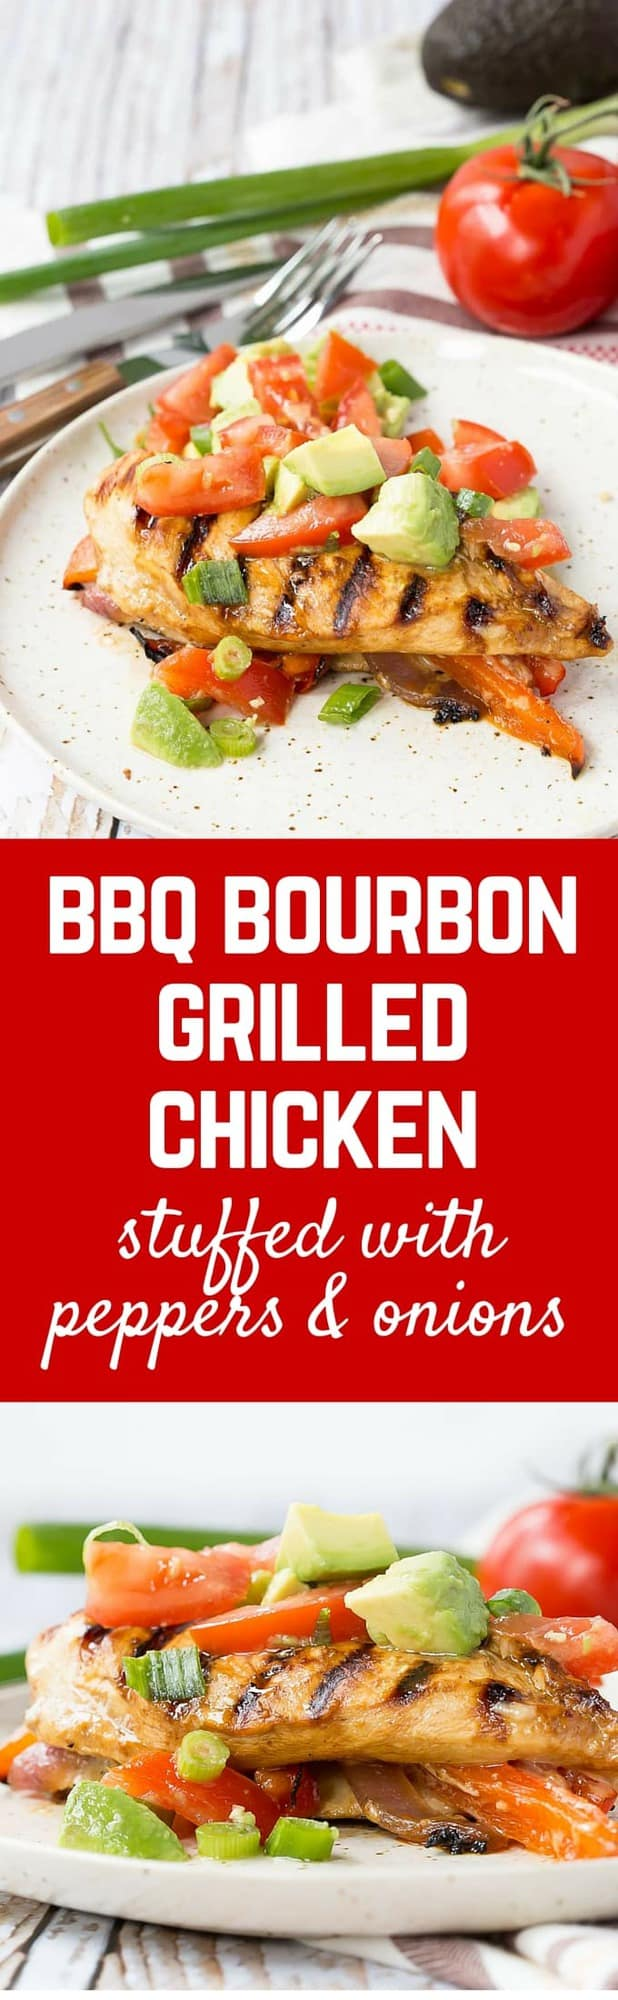 Summer at its best, this BBQ bourbon grilled chicken is marinated until flavorful and tender and then stuffed with peppers, onions and cheese. Get the easy summer recipe on RachelCooks.com!